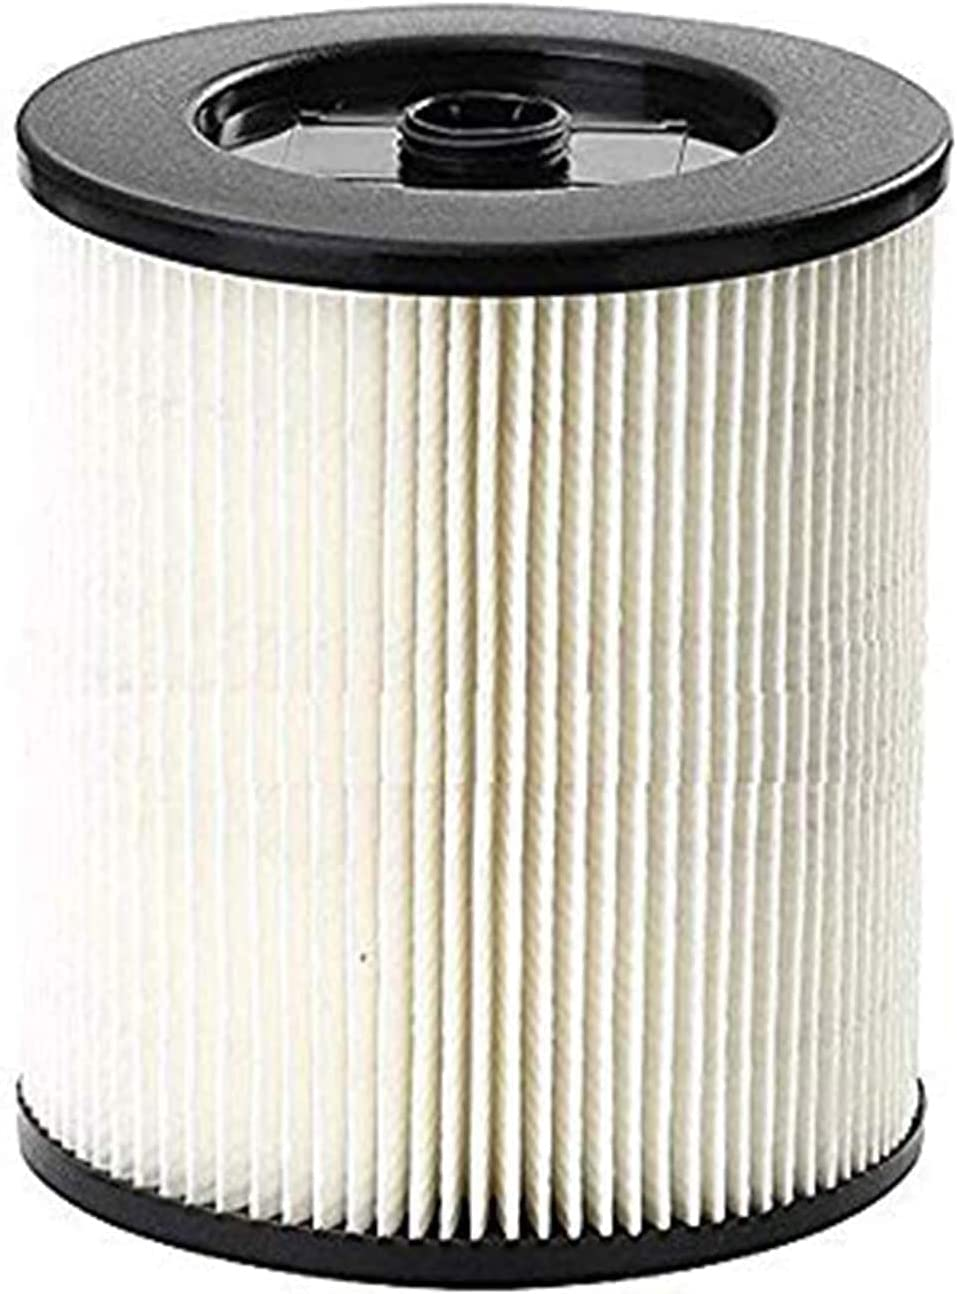 YUSHIJIA ZPTECH Replacement Filter Fit Sales of SALE items from new works 9-1781 Shop Vac Craftsman San Jose Mall